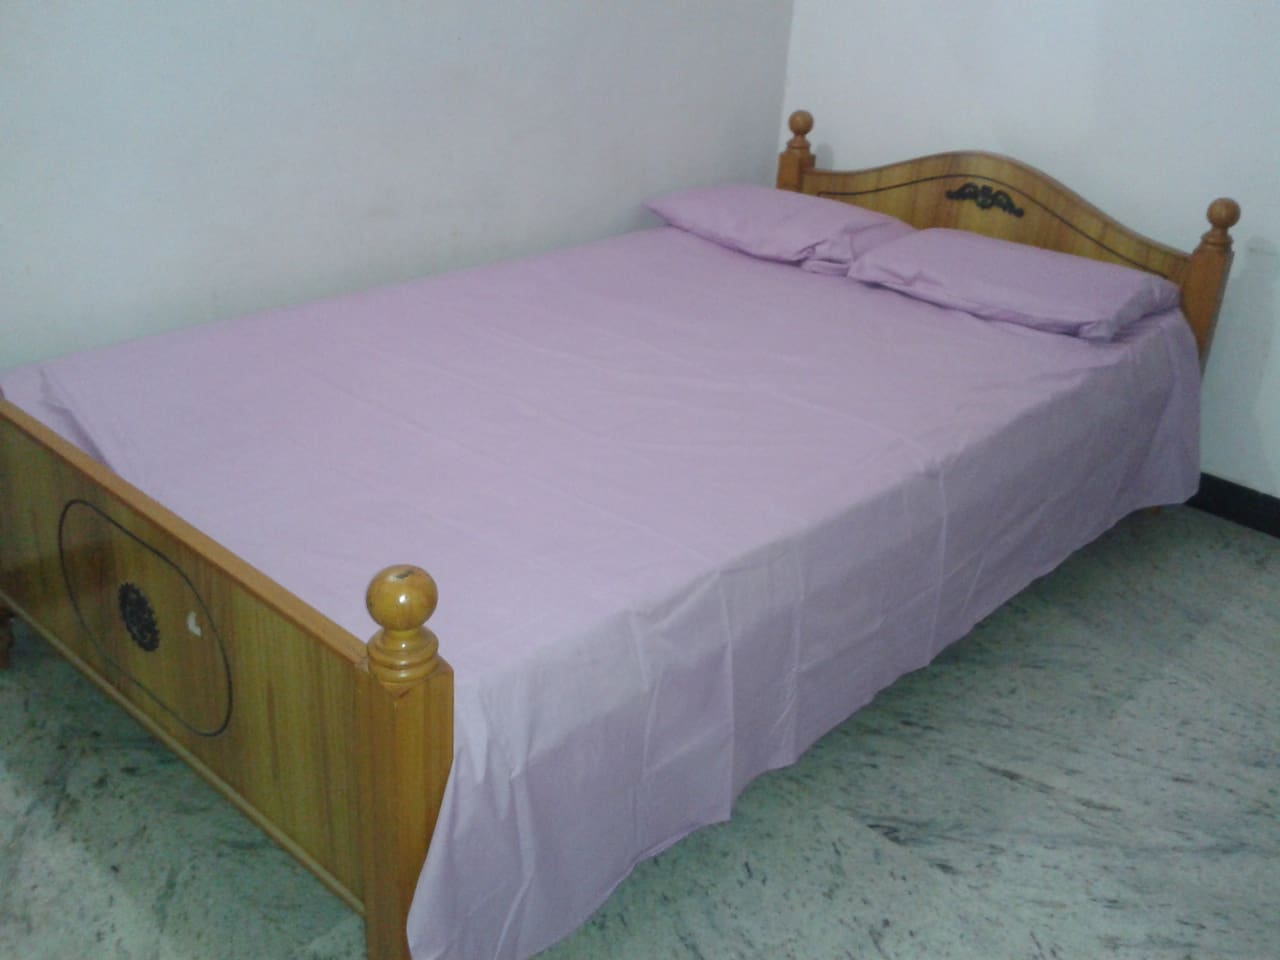 All set for peaceful sleep.. Clean and tidy (Representative image)